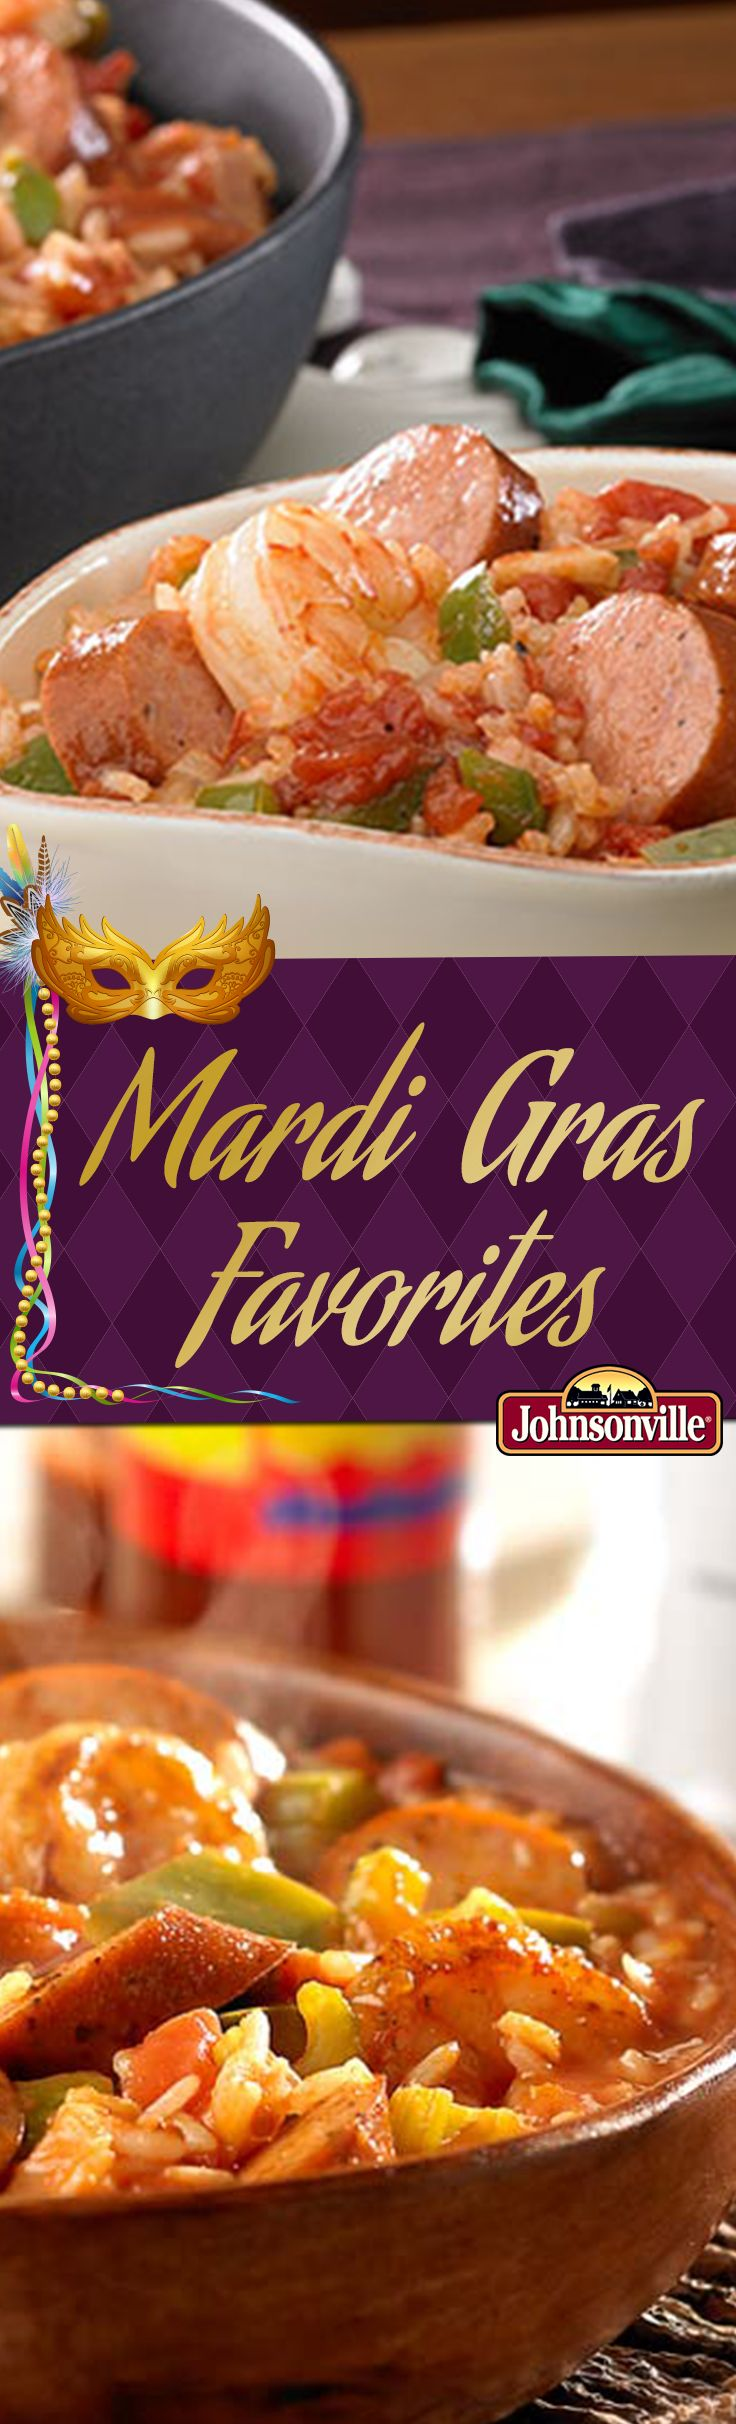 143 best cajun recipes images on pinterest cajun recipes pork make johnsonville smoked sausage part of your fat tuesday celebration find these jambalaya recipes and forumfinder Choice Image